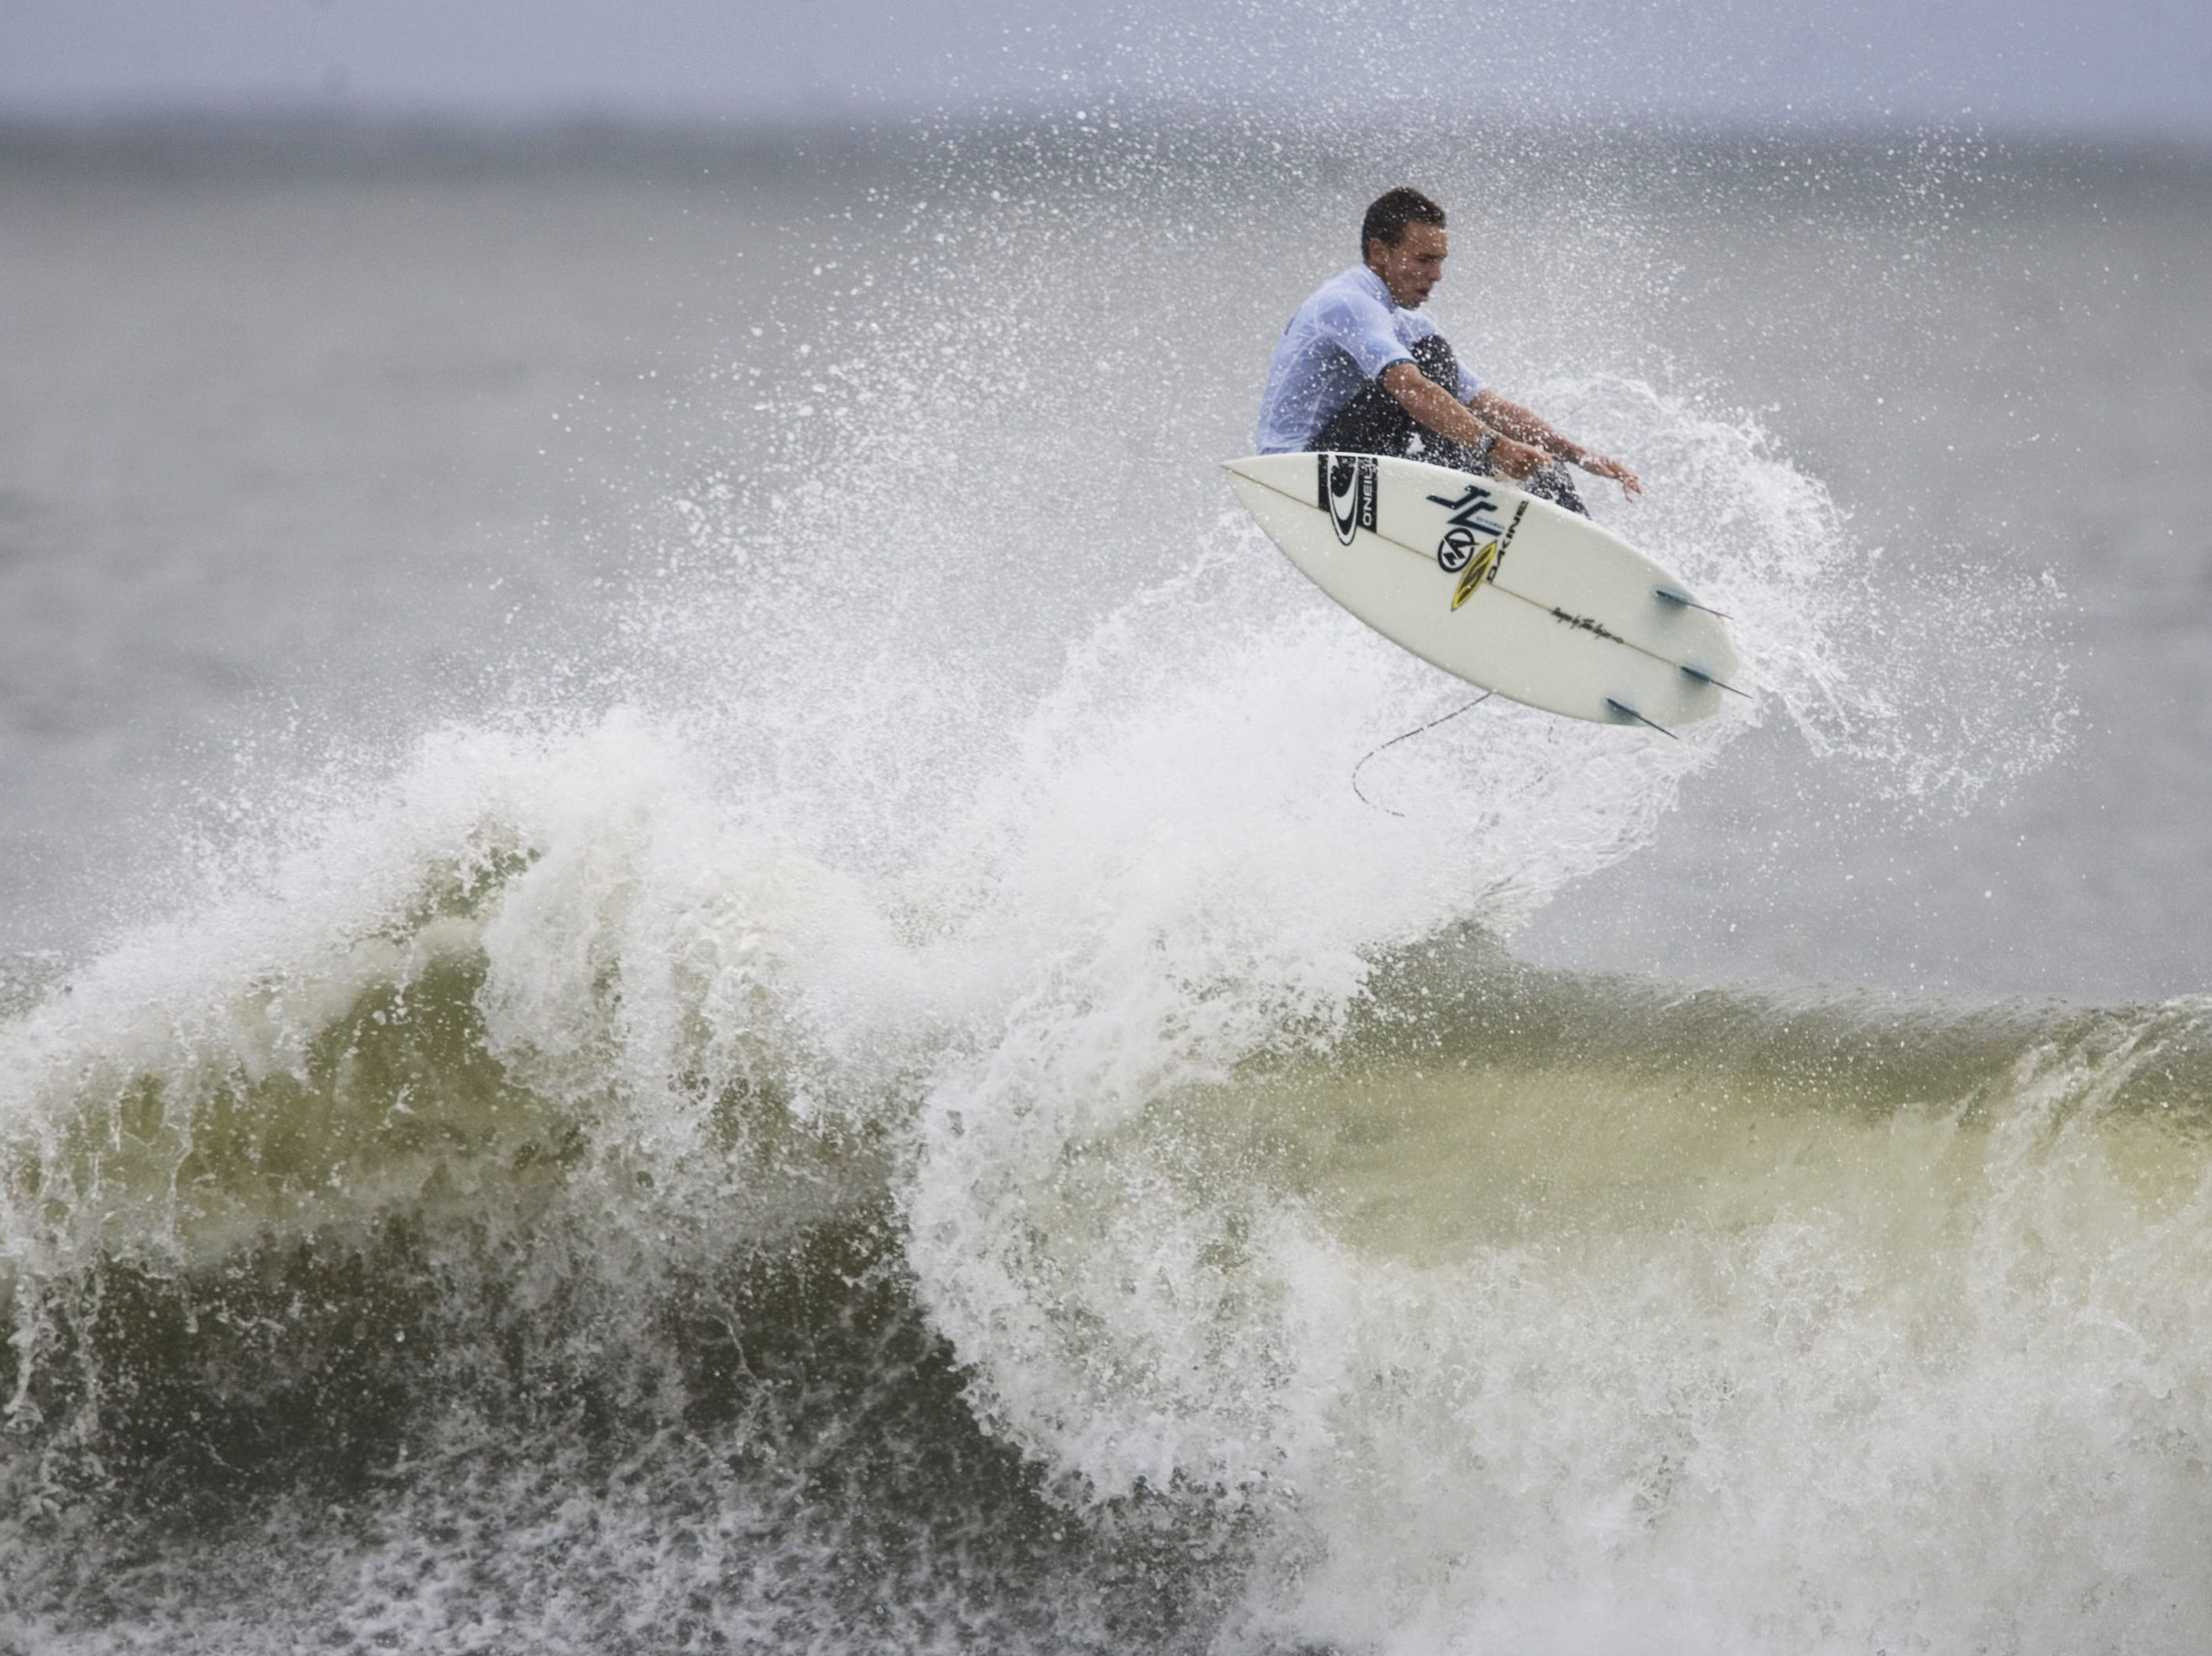 Early heats of day one competition of the Foster's Belmar Pro & Fins Fast Jr. Pro take place at the 16th Ave beach in Belmar on Saturday, September 12, 2009. Brett Barley competes in the Jr. Pro division.  Doug Hood/ Asbury Park Press- Belmar, NJ- 09.12.09 (#5875)